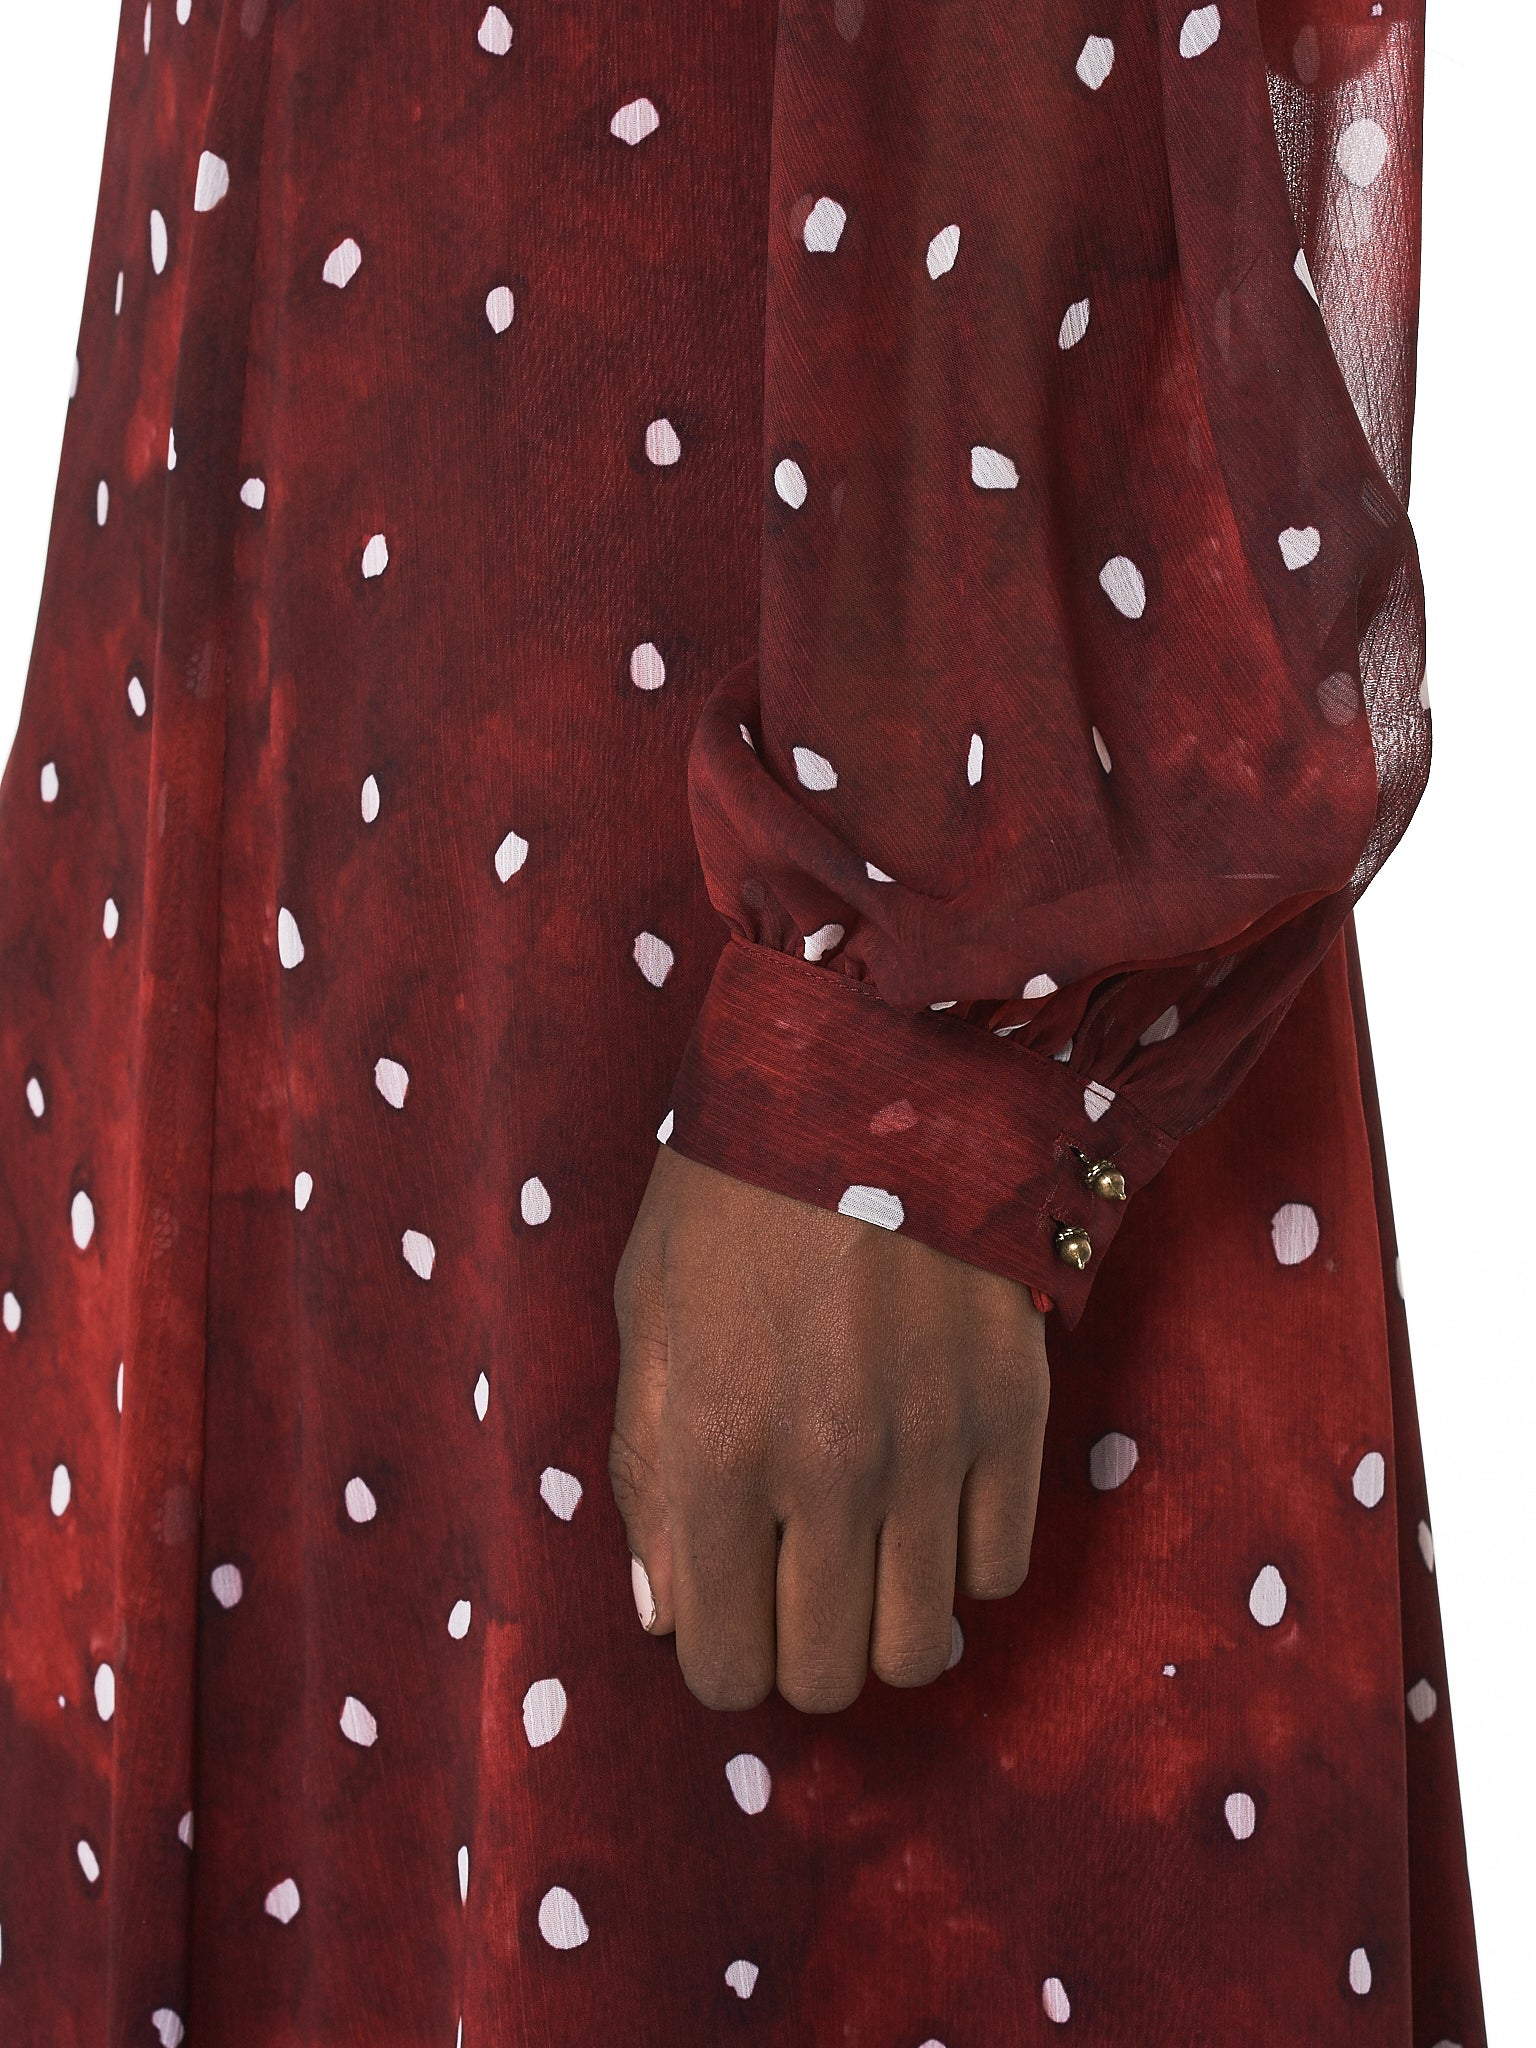 Polkadot Dress (D1R-RED)